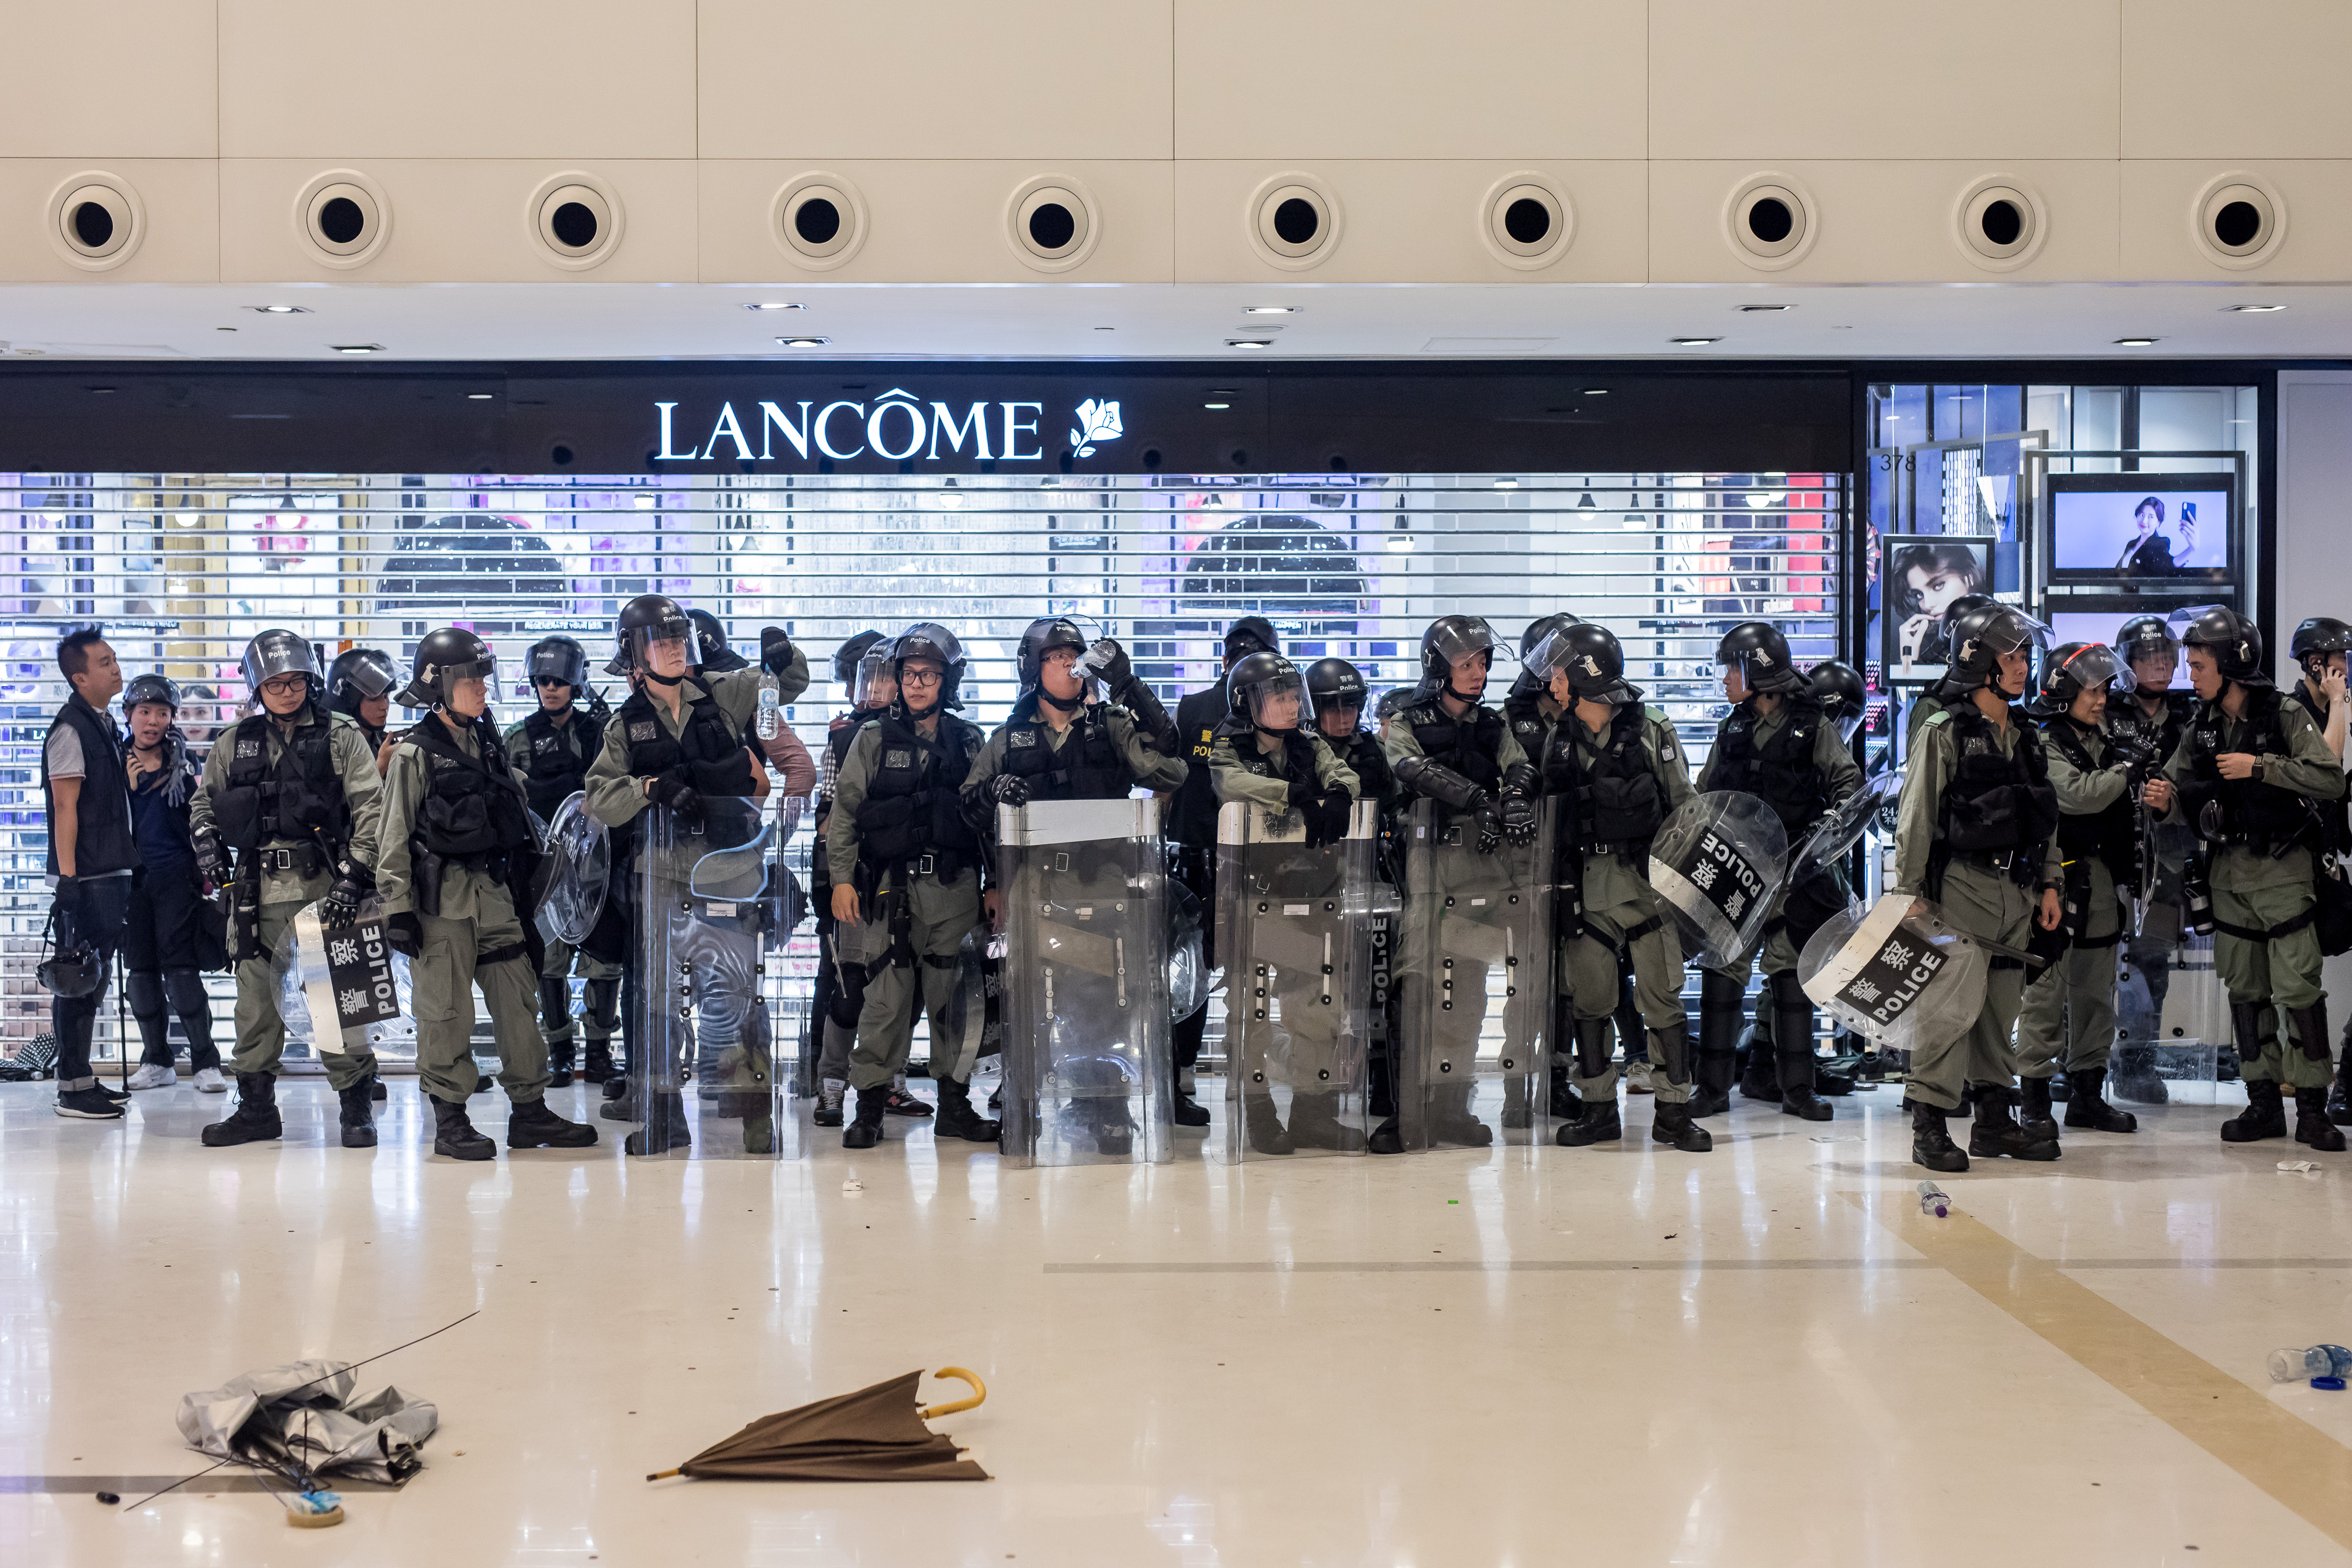 Riot police stand off against demonstrators inside New Town Plaza shopping mall, operated by Sun Hung Kai Properties Ltd., during a protest in the Shatin district of Hong Kong, China, on Sunday, July 14, 2019.